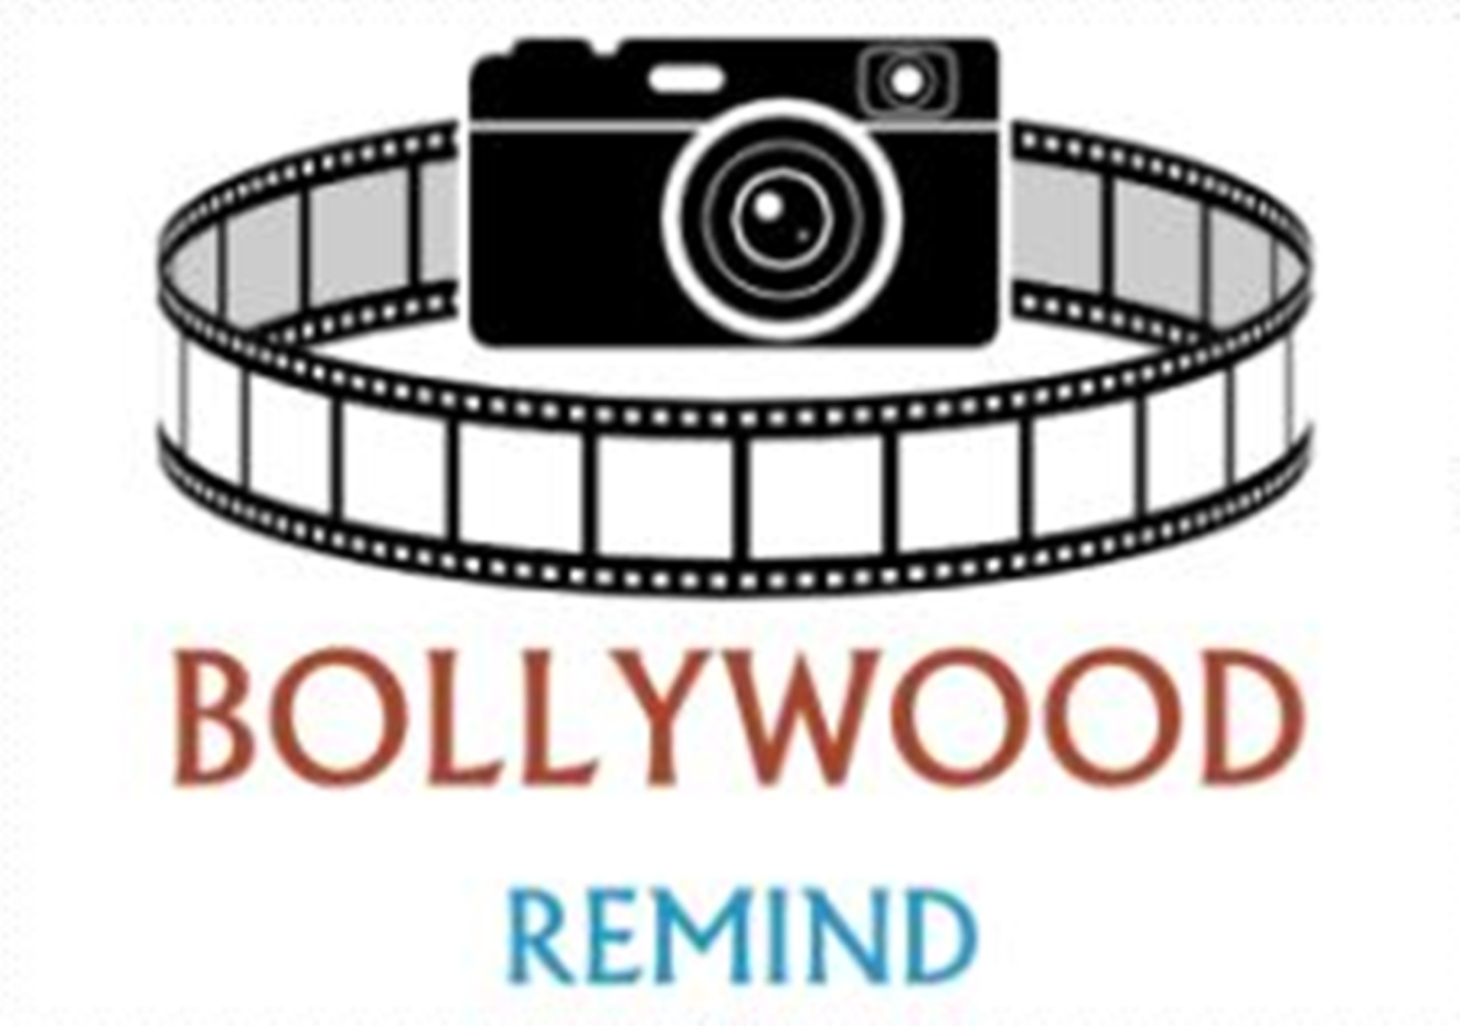 Bollywood Remind | bollywood breaking news in hindi ,social trade news , bollywood news ,bollywood